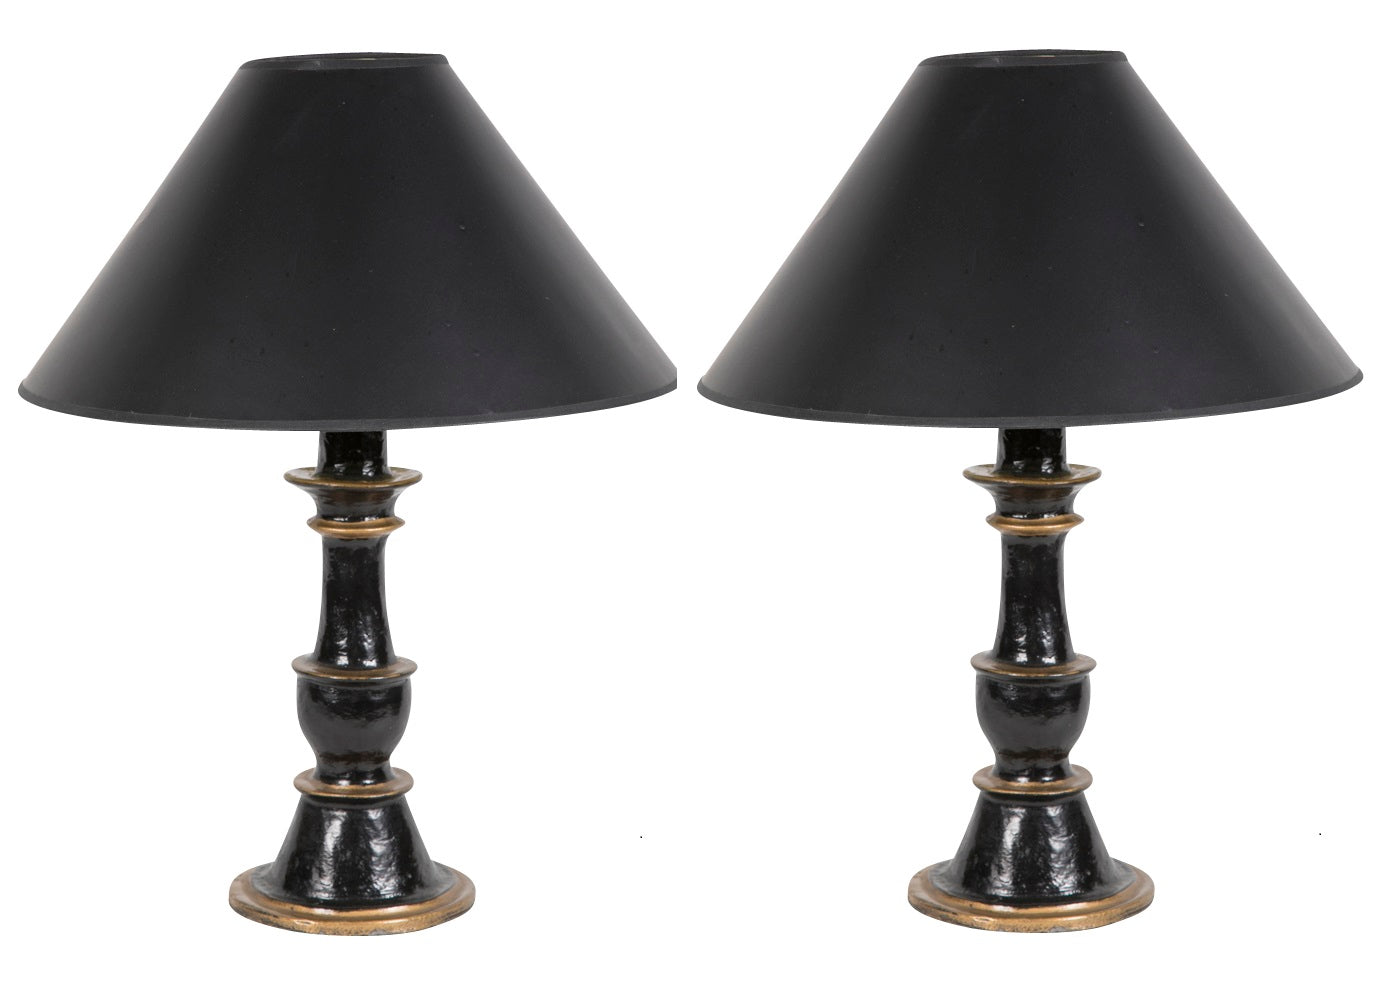 Pair of 19th Century English Painted Iron Lamps